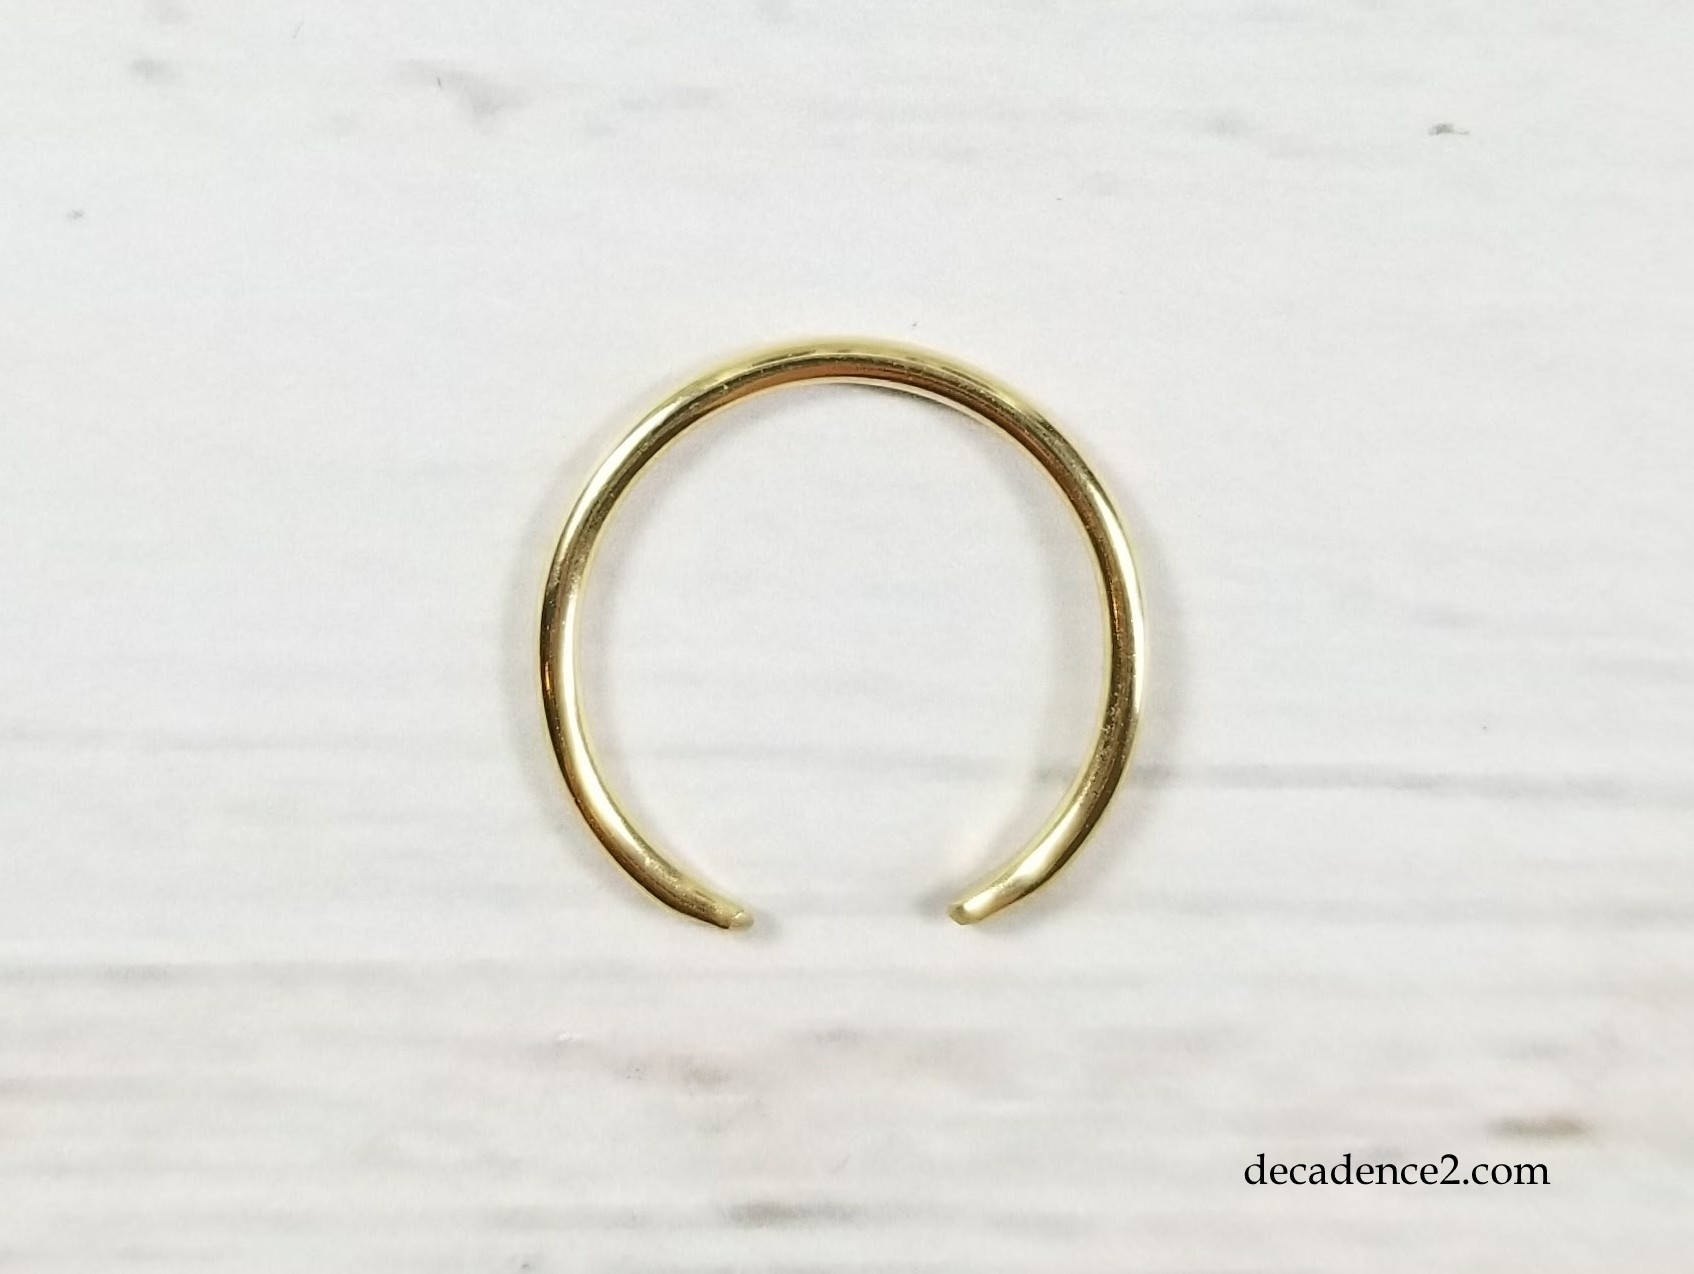 Solid 14K Yellow Gold Round Wire Toe Ring Regarding Most Recently Released Full Circle Toe Rings (View 13 of 15)